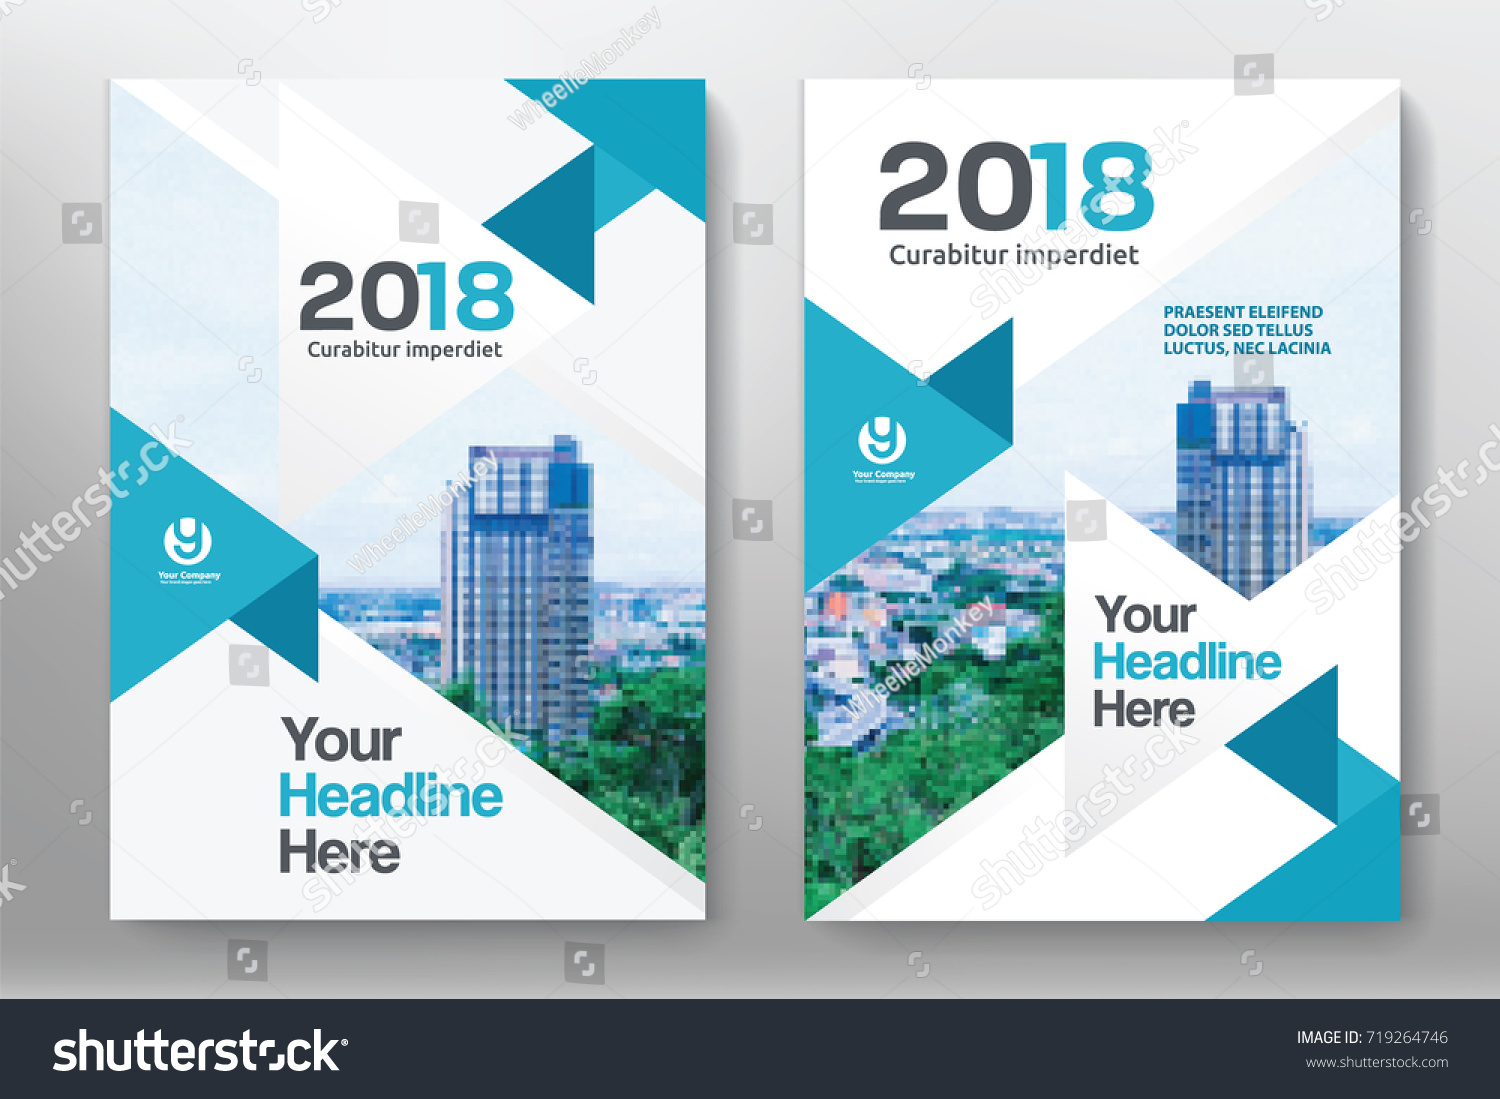 Book Cover Design Sites : City background business book cover design stock vector